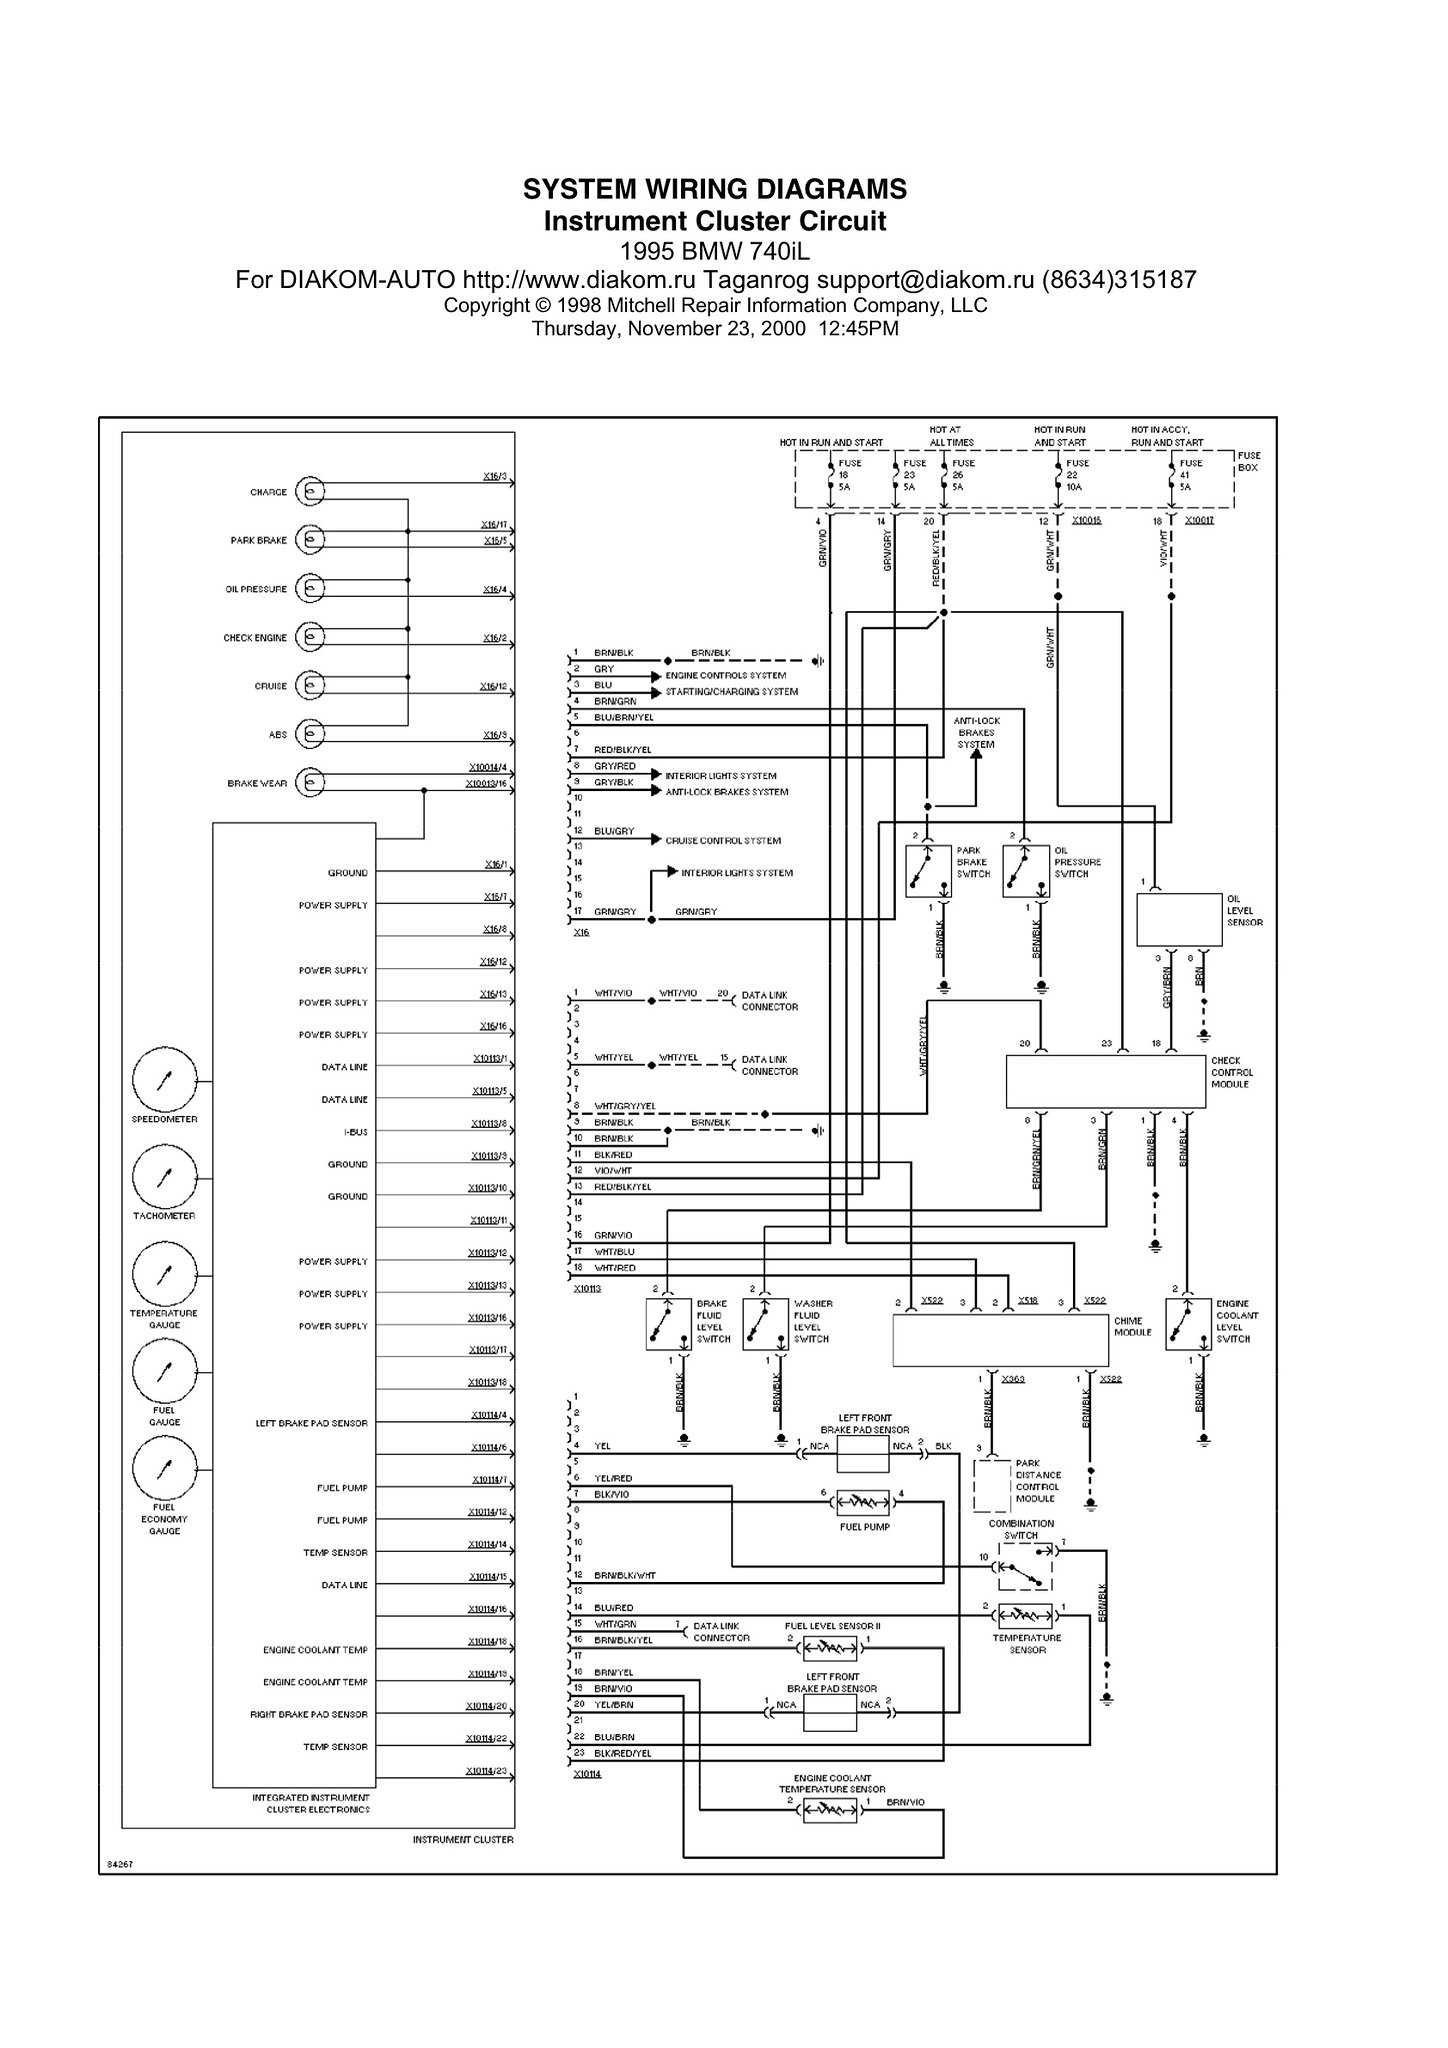 e39 tail light wiring diagram e39 lcm wiring diagram e39 wiring diagrams 7703585142 dbc4ceb414 k e lcm wiring diagram 7703585142 dbc4ceb414 k